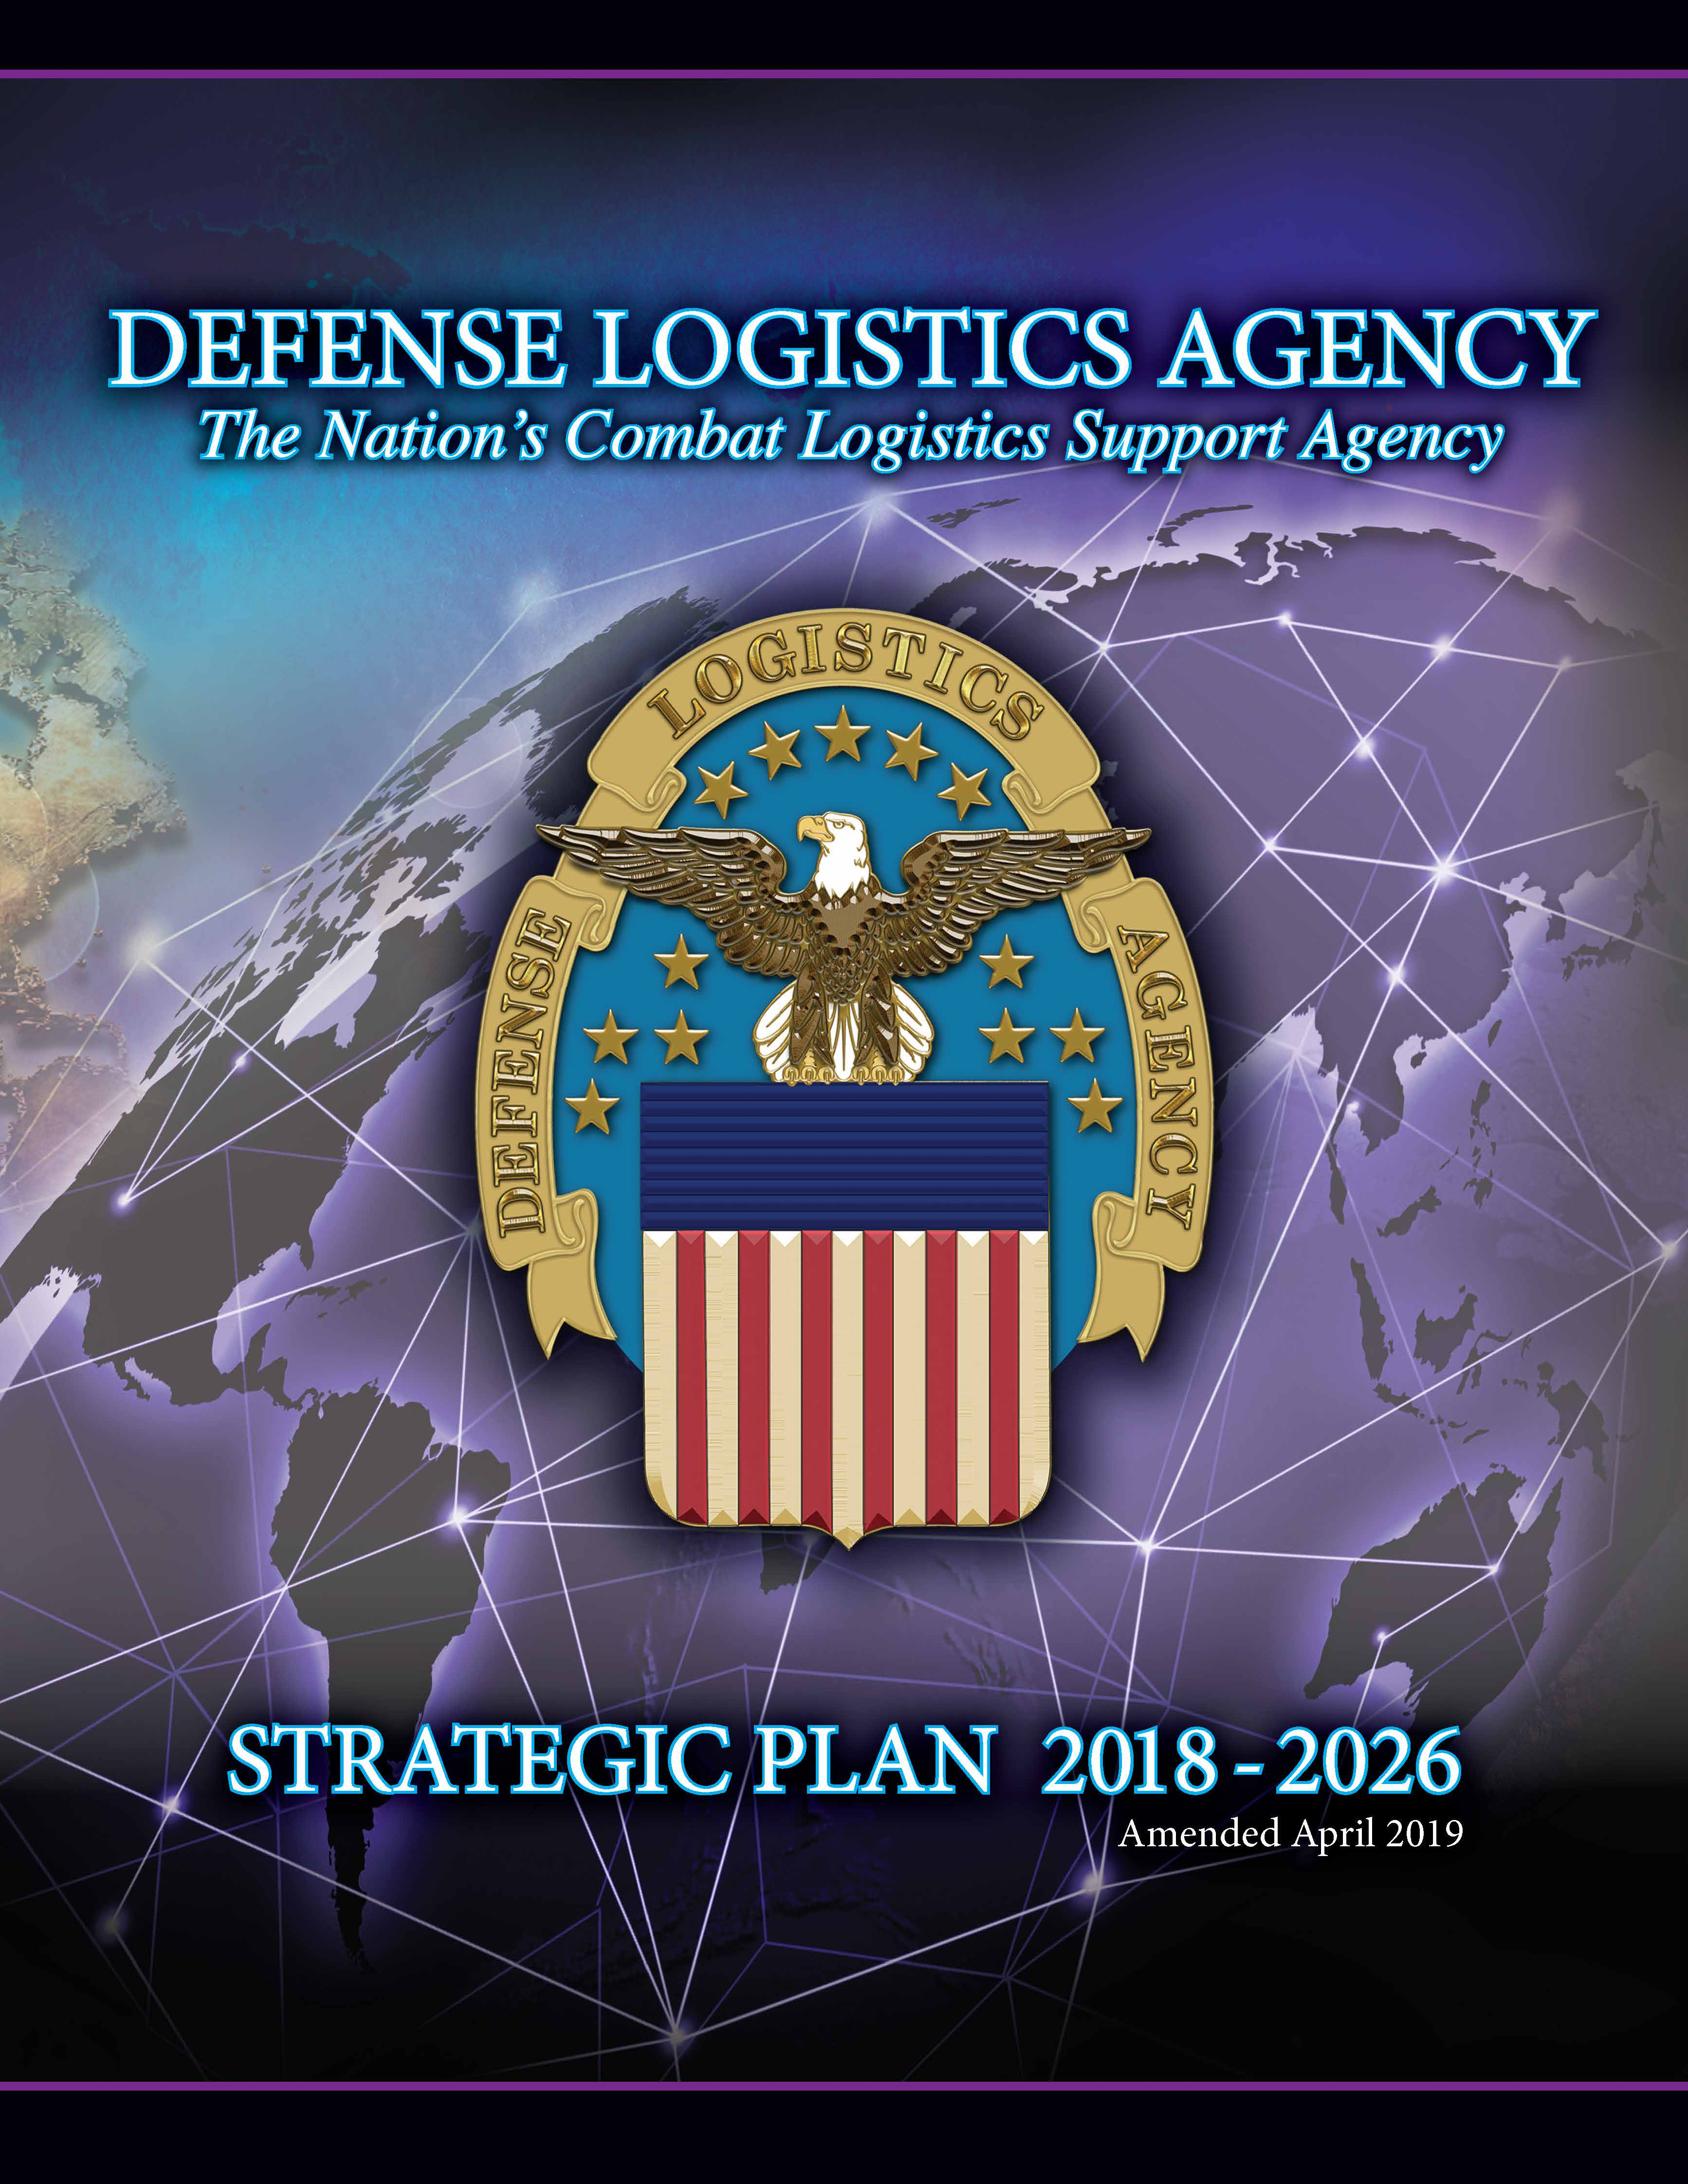 DLA Strategic Plan cover